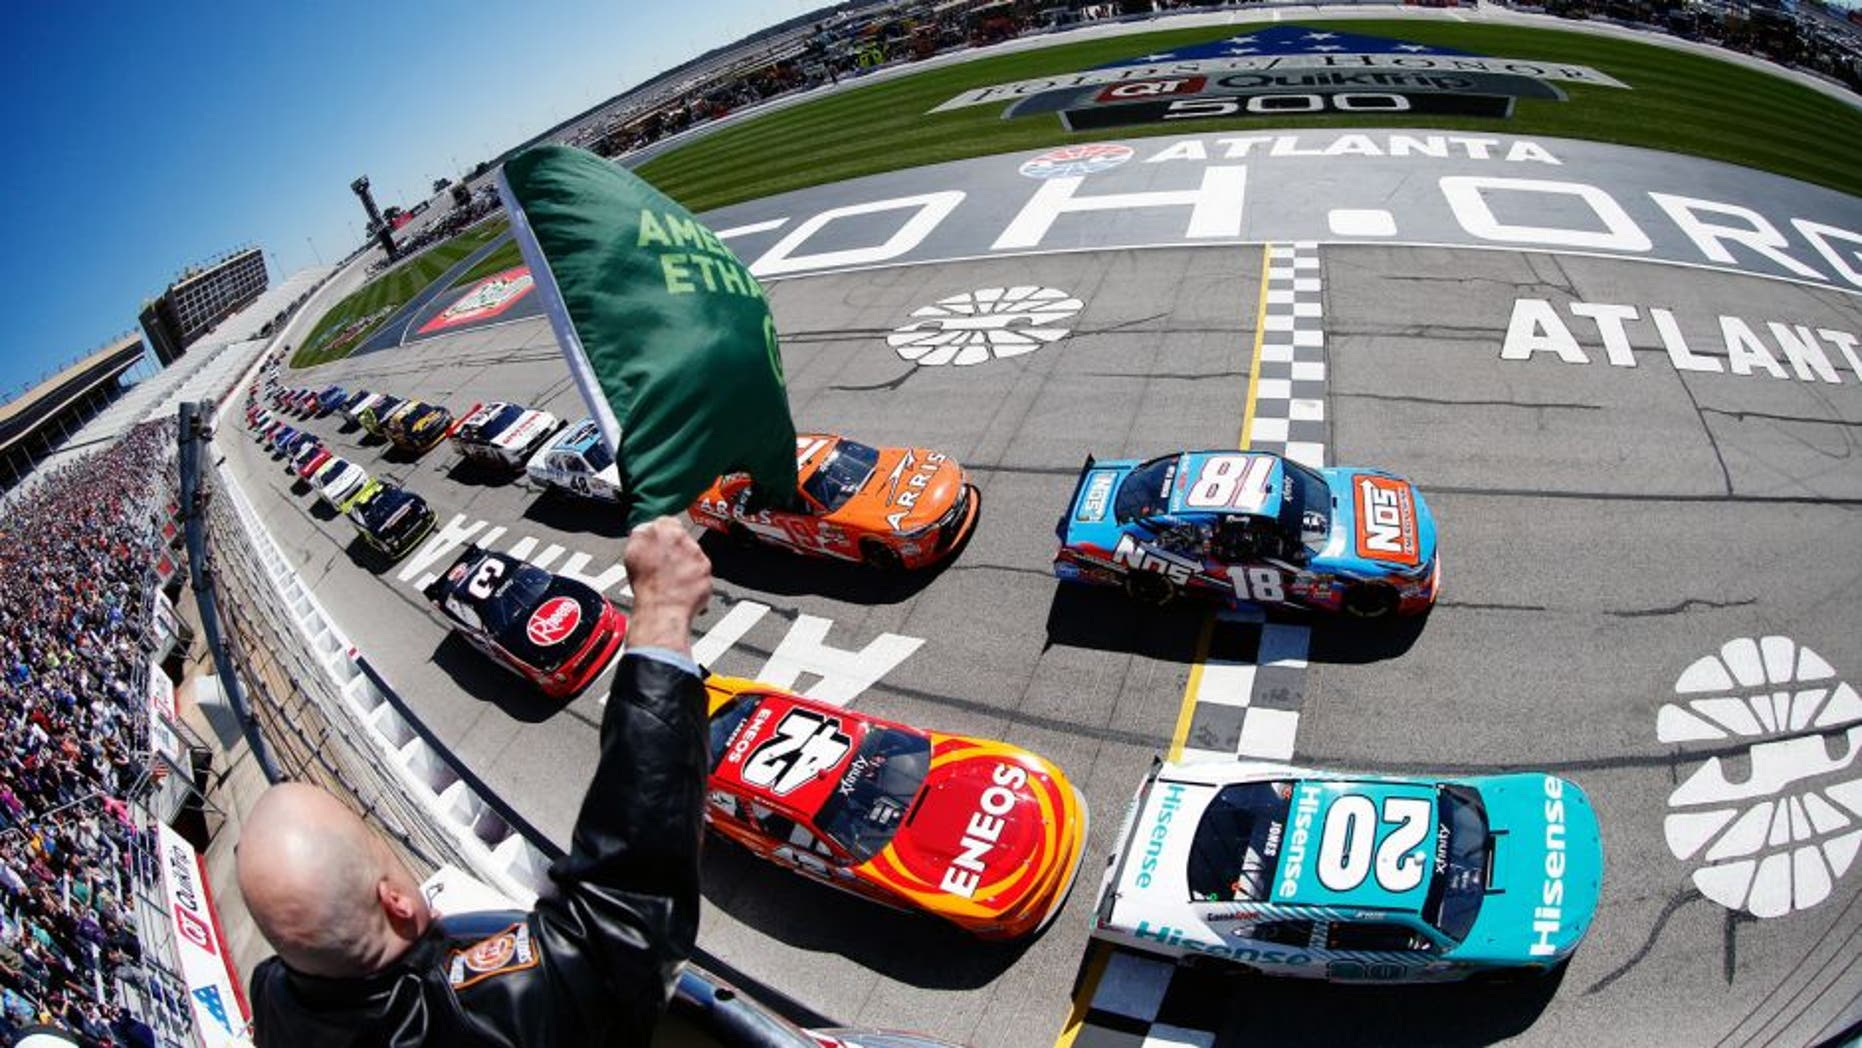 HAMPTON, GA - FEBRUARY 27: Kyle Busch, driver of the #18 NOS Energy Drink Toyota, and Erik Jones, driver of the #20 Hisense USA Toyota, lead the field past the green flag to start the NASCAR XFINITY Series Heads Up Georgia 250 at Atlanta Motor Speedway on February 27, 2016 in Hampton, Georgia. (Photo by Matt Sullivan/NASCAR via Getty Images)